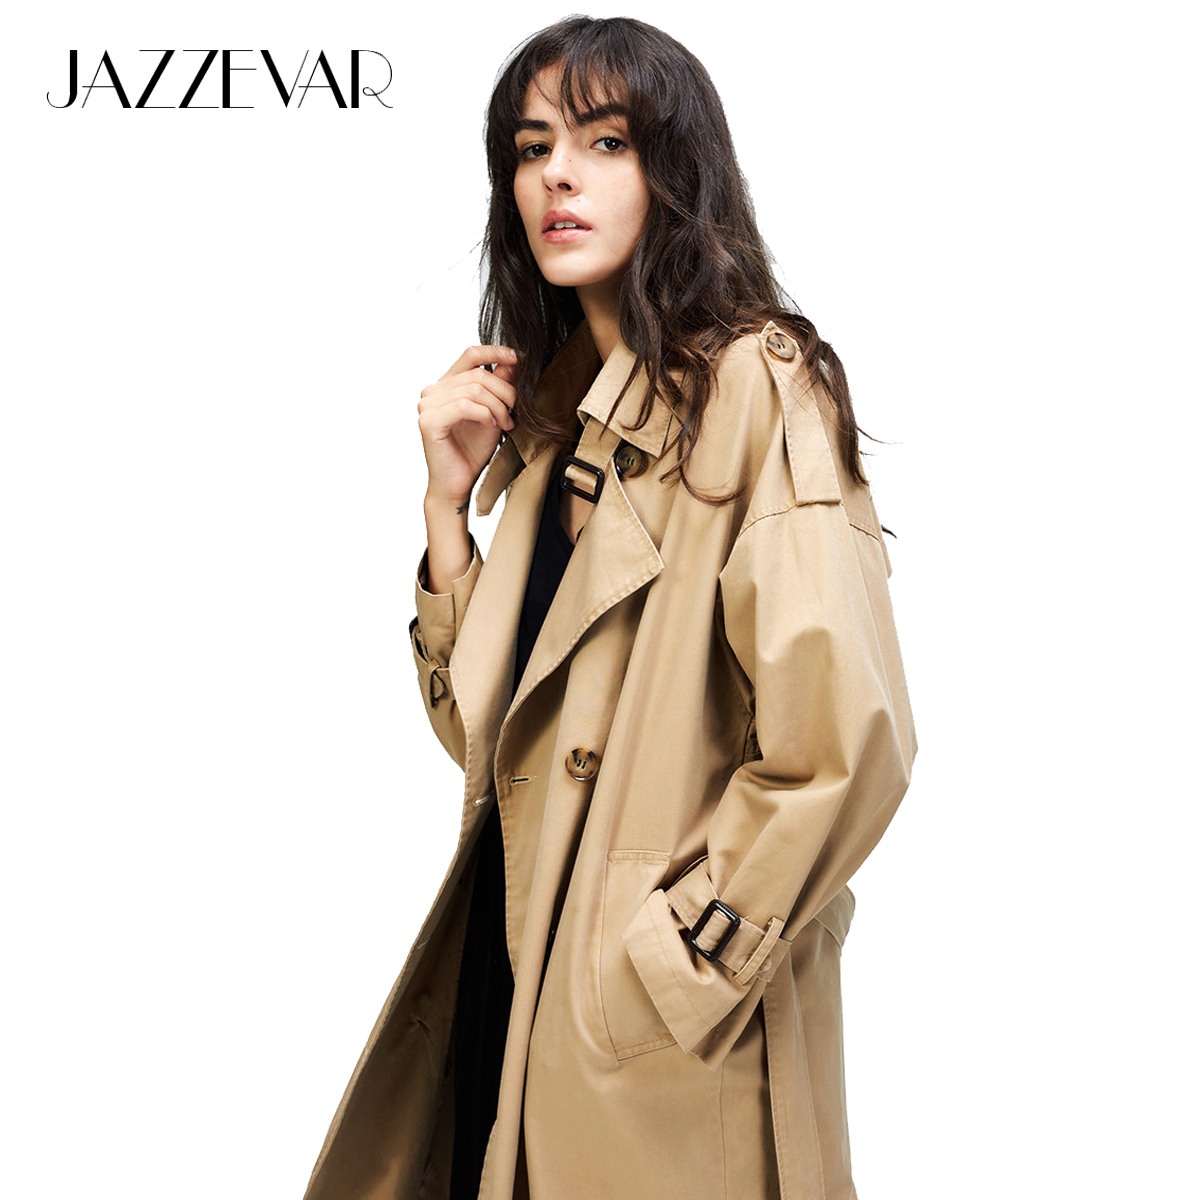 Jazzevar Autumn New Women's Casual Trench Coat Oversize Double Breasted Vintage Washed Outwear Loose Clothing